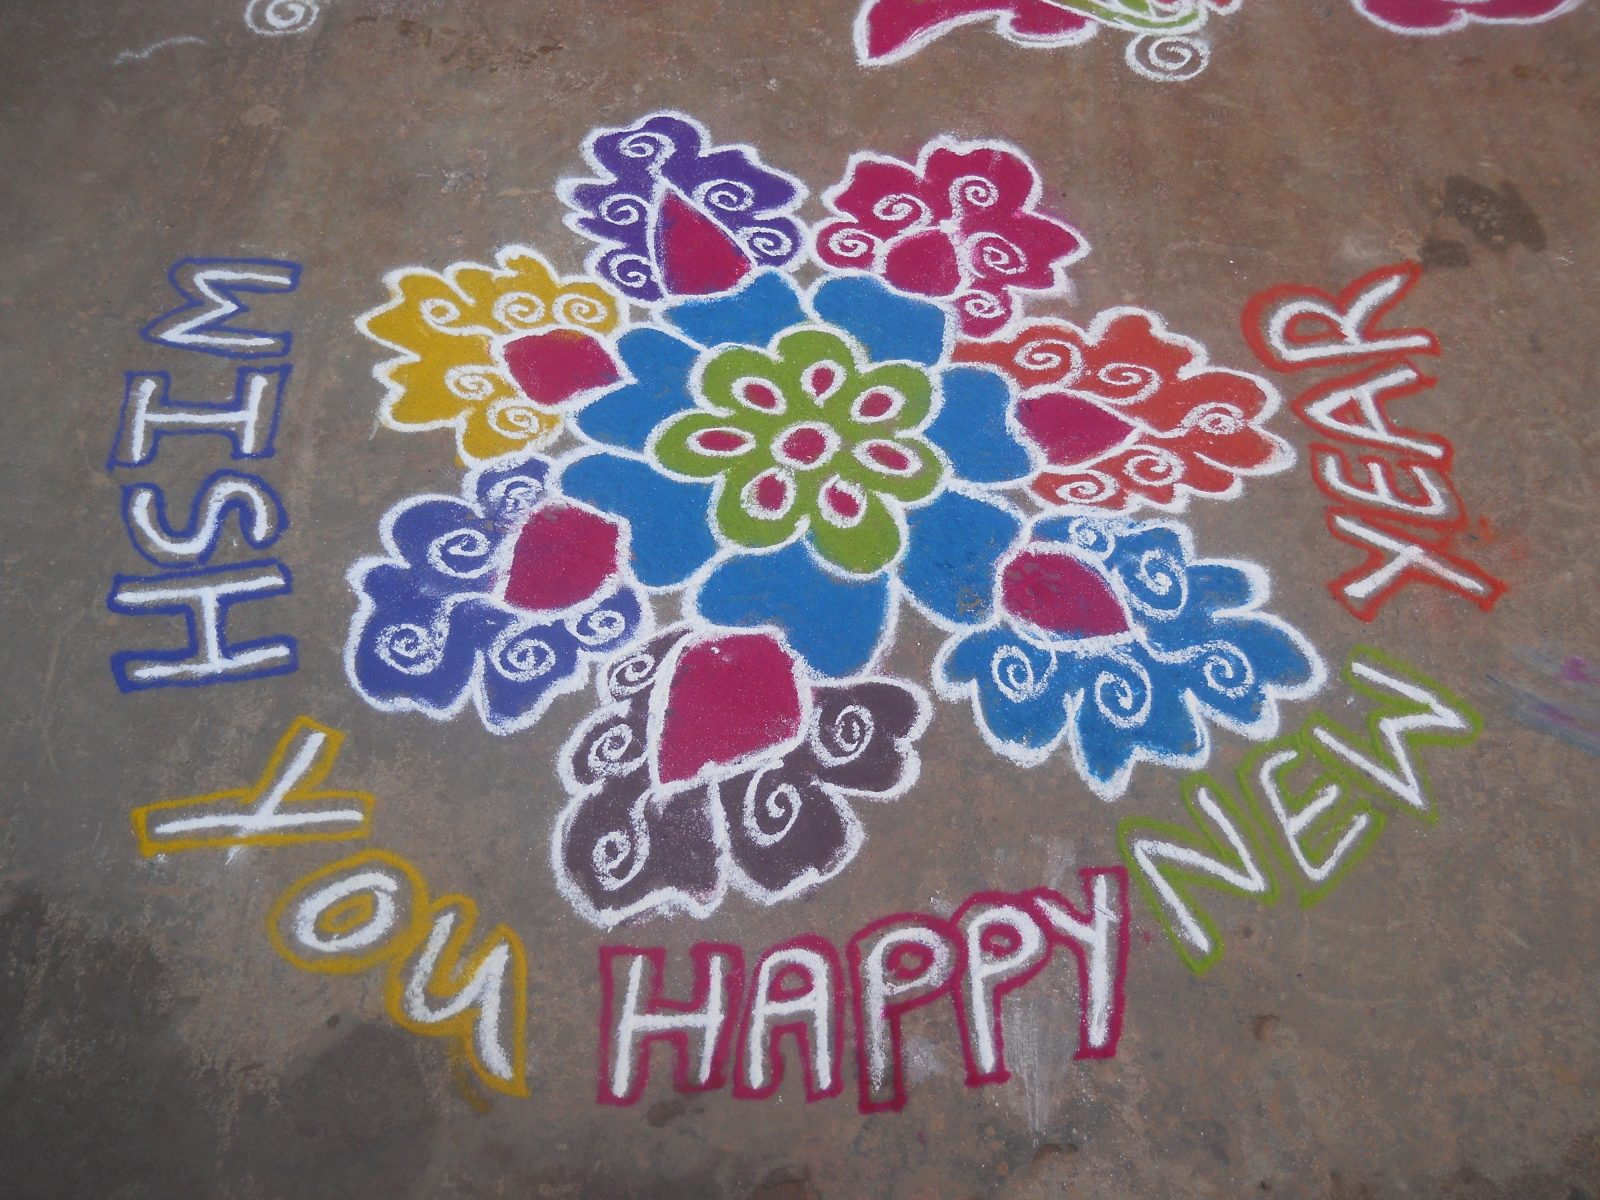 Happy New Year 2020 Images With Rangoli